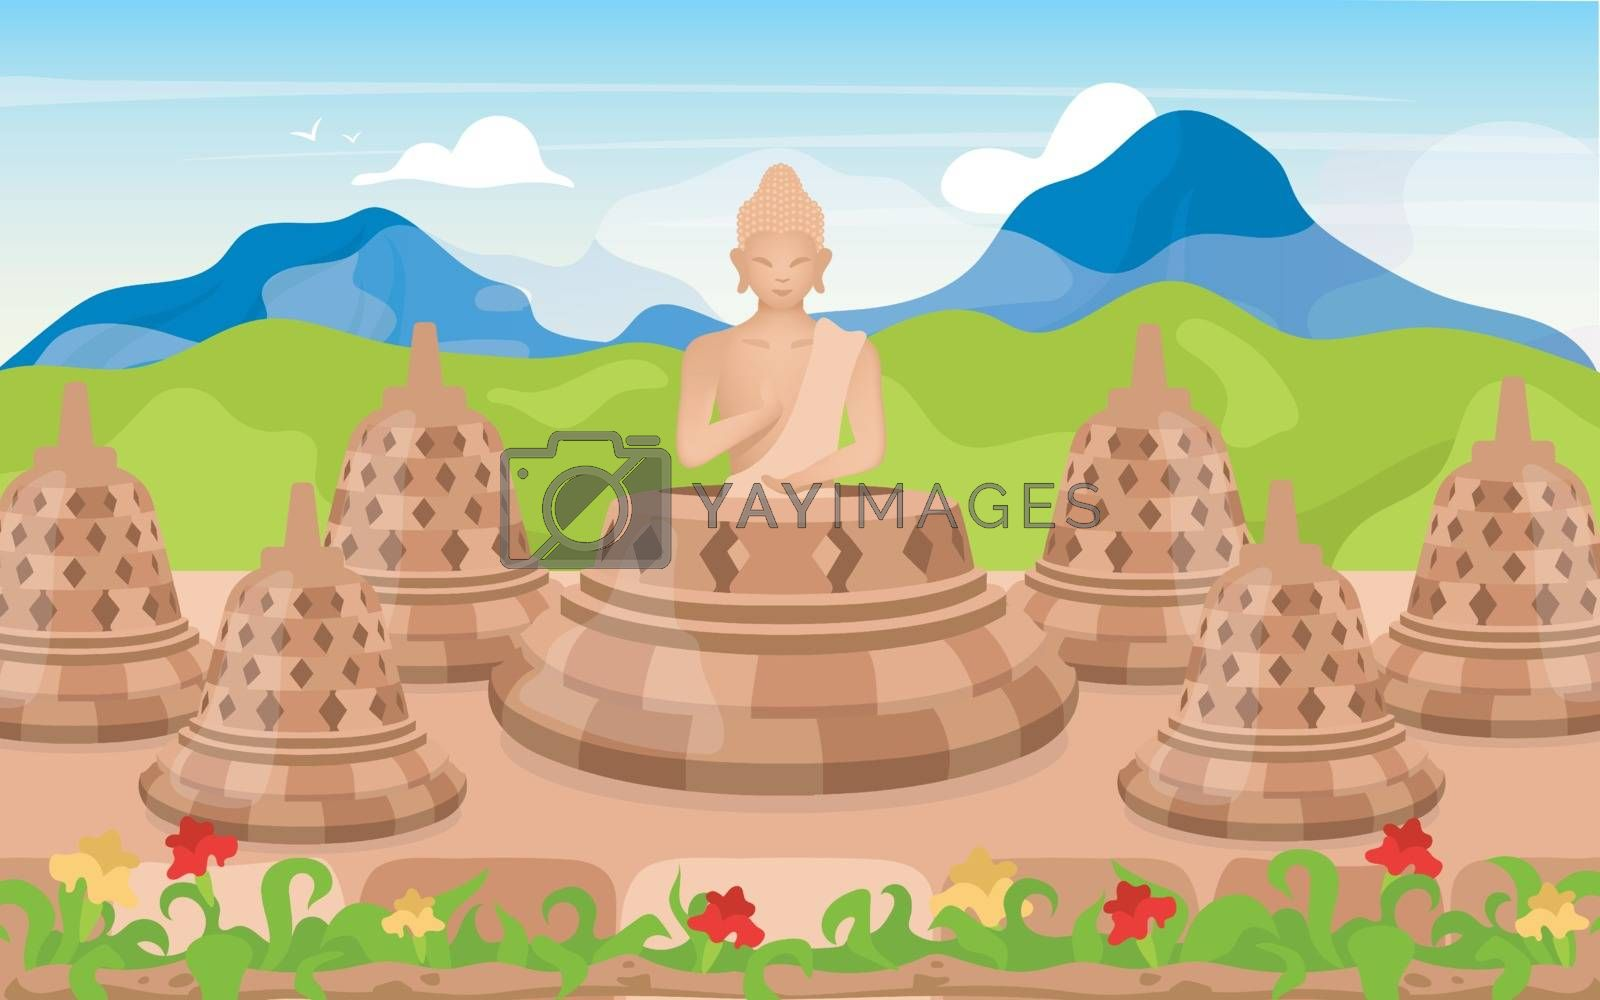 Buddha flat vector illustration. Religious sculpture. Place of worship in mountains. Meditating pose. Indonesian religion. Buddhism. Borobudur cartoon background